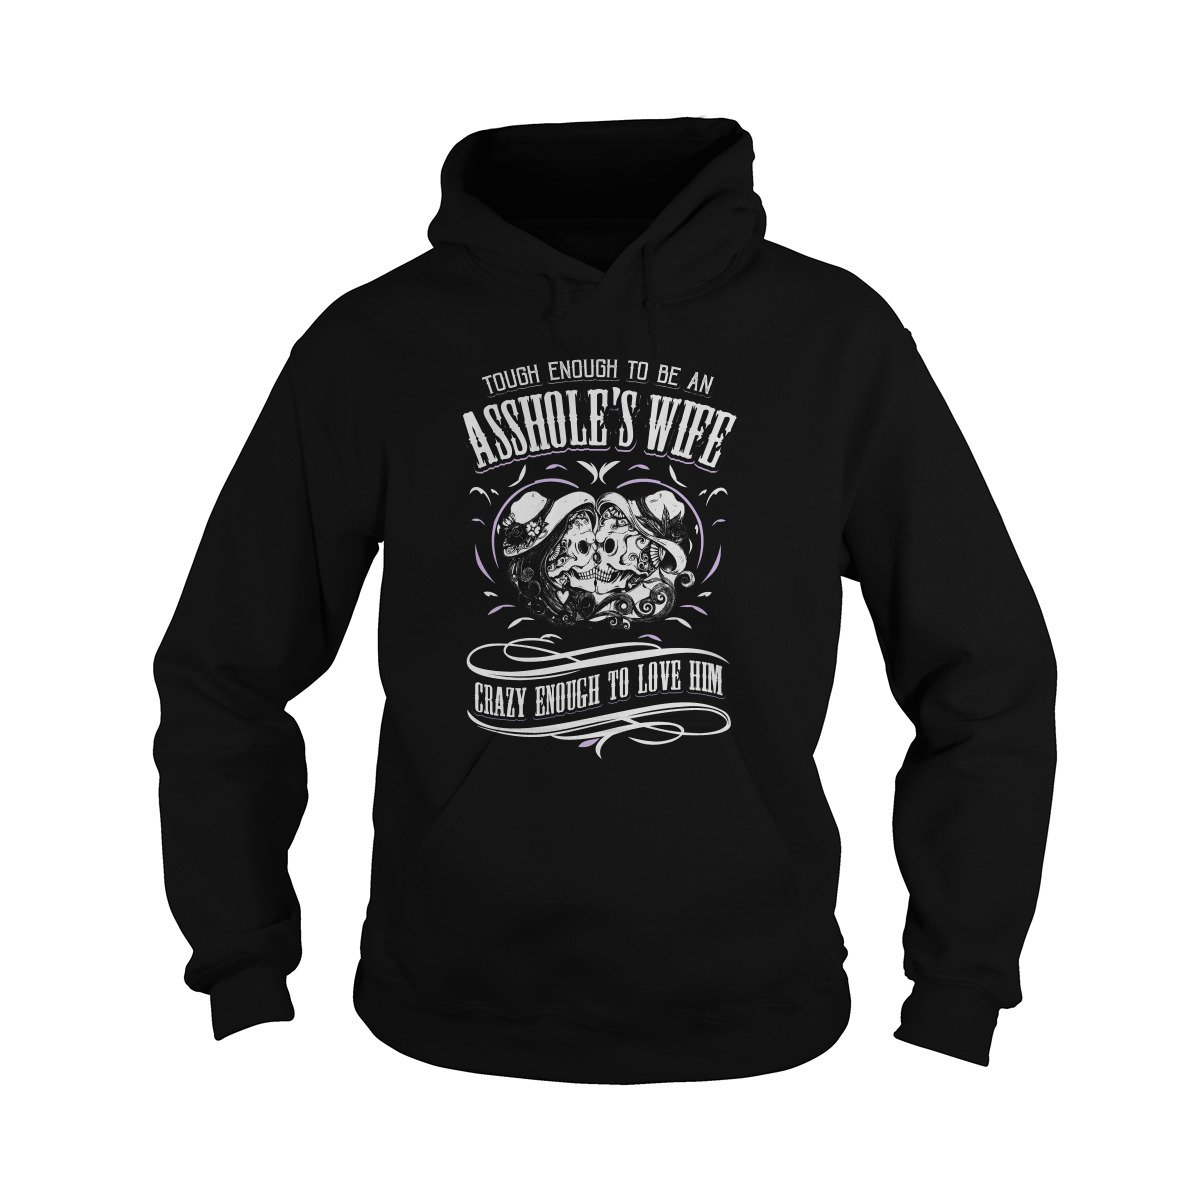 Unisex Tough Enough to be an Asshole's Wife Crazy Enough to Love him Hoodie (L, Black)